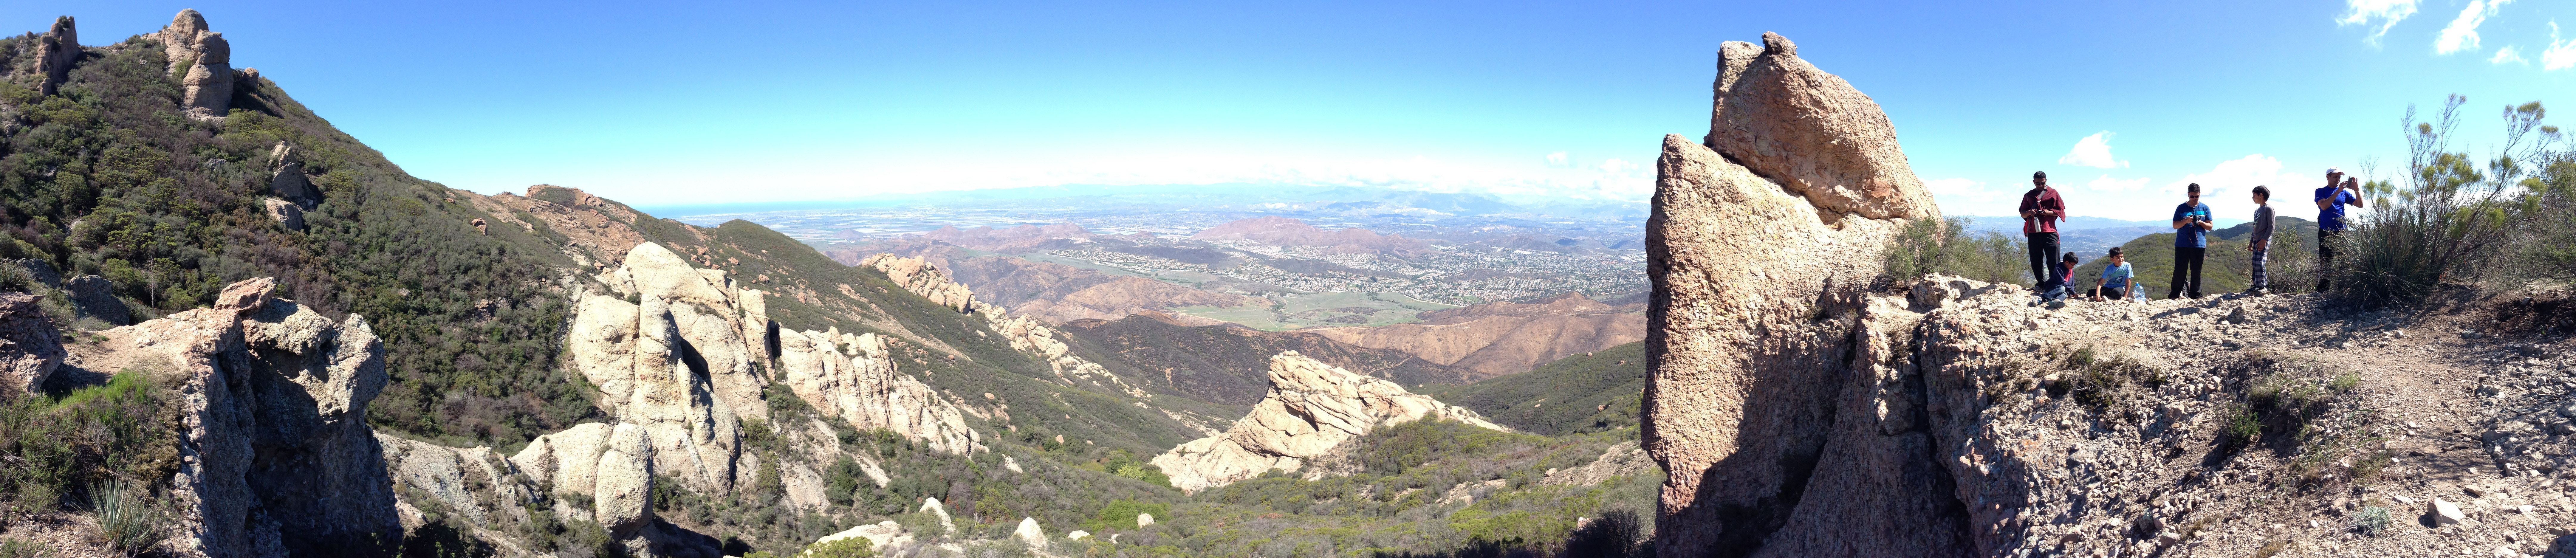 Panaromic view of newbury park and camarillo